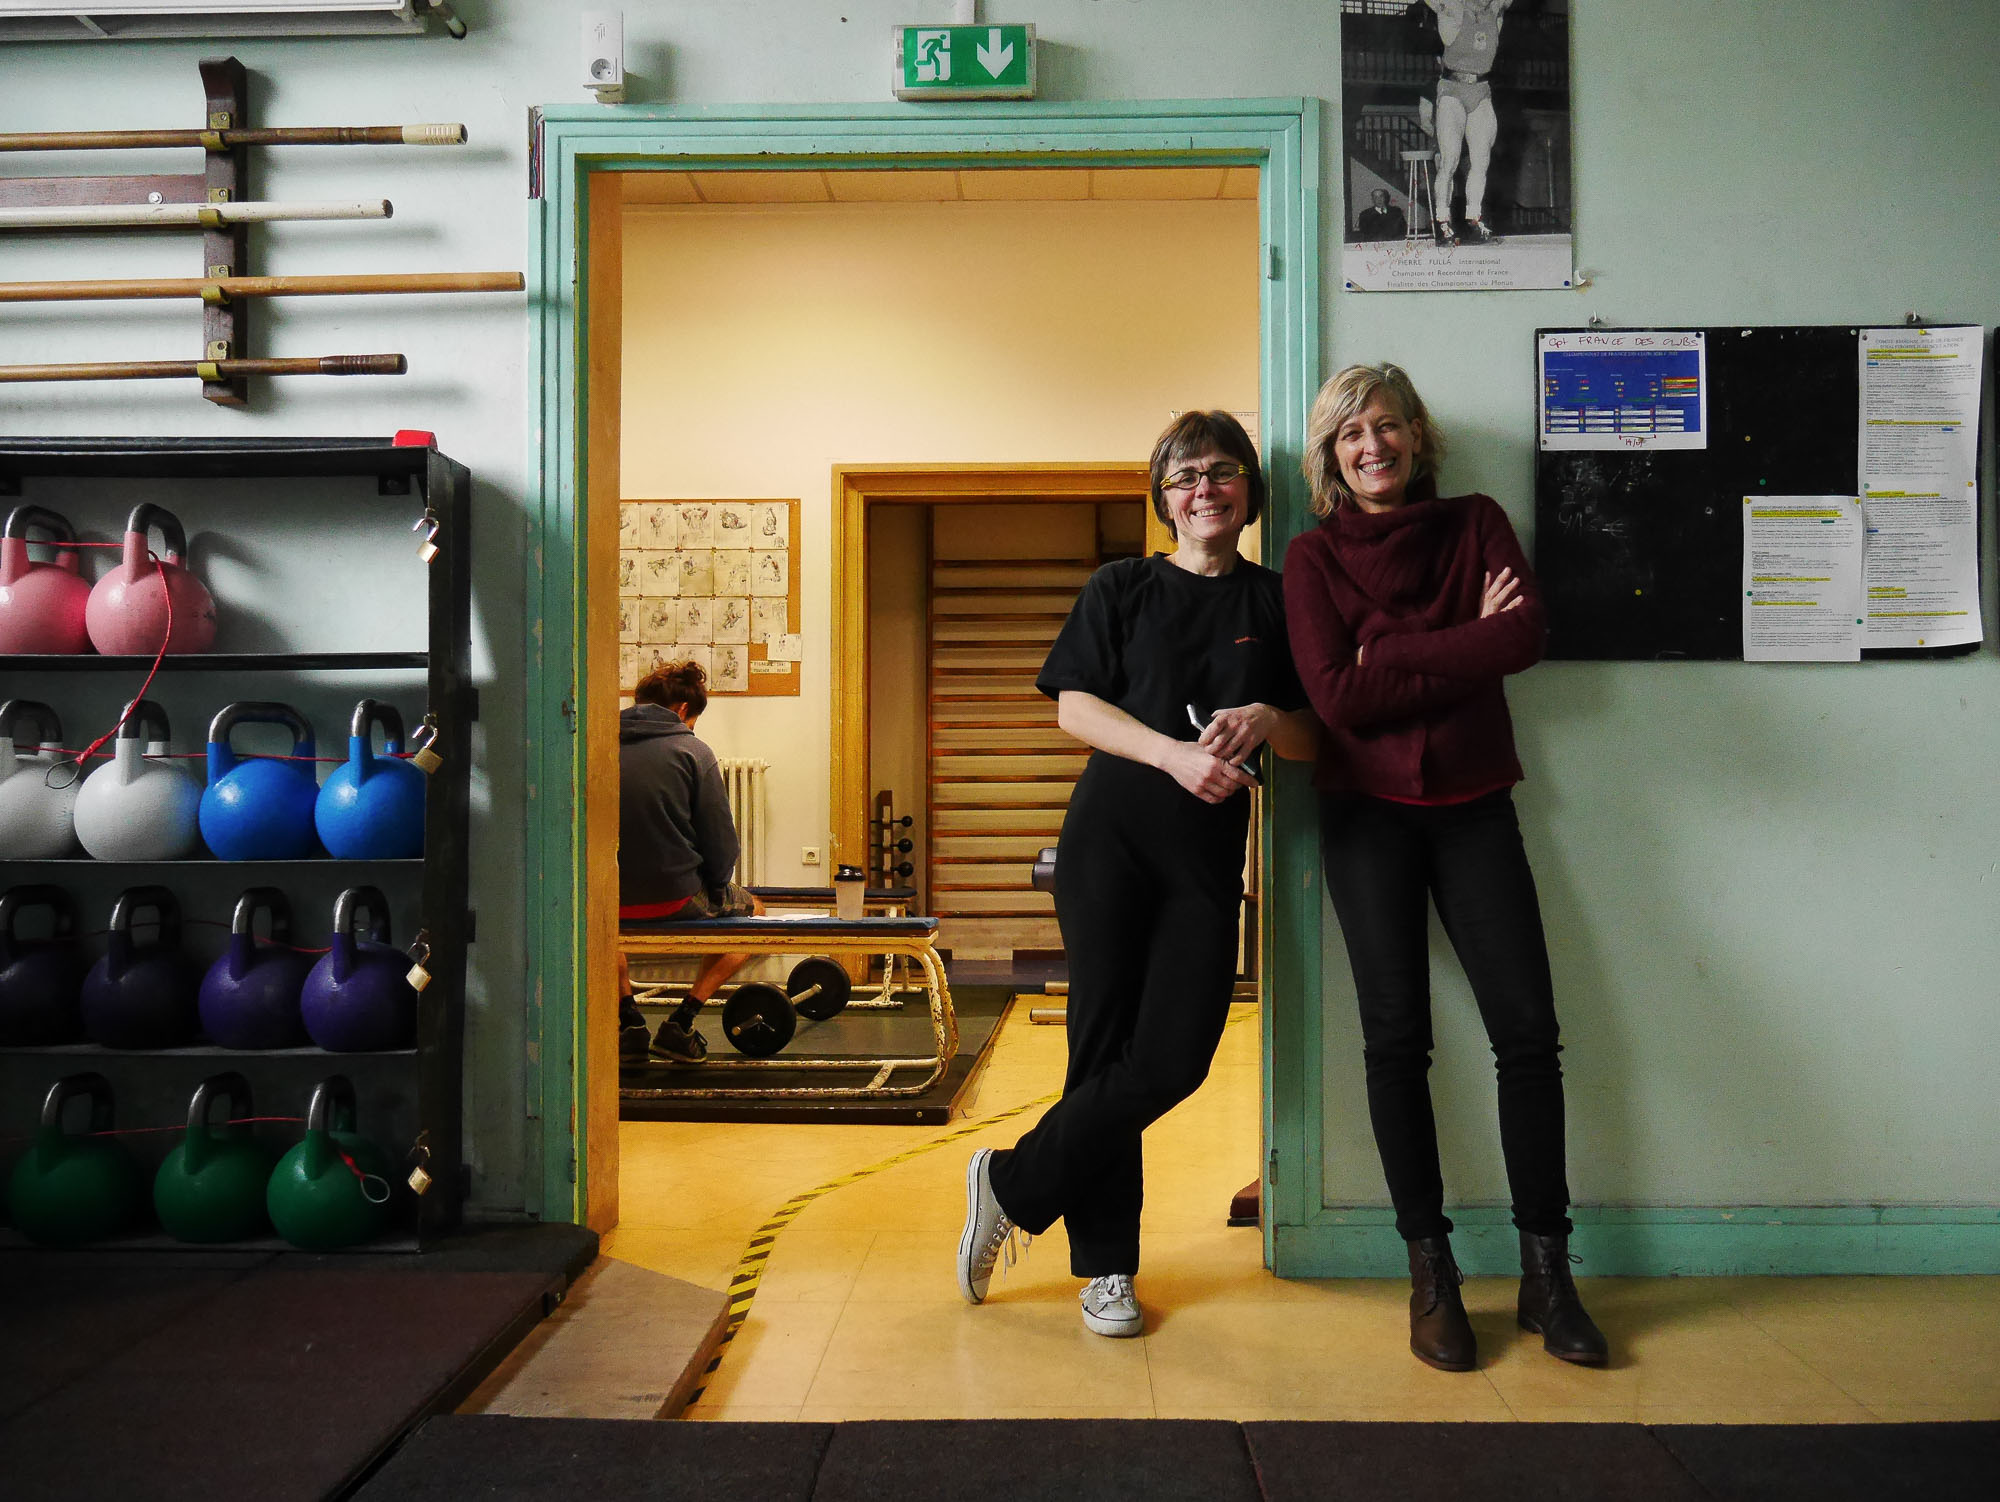 Marie stands with Nina — the world champion in kettle-bells — 'It's training for life. For military training, for having children, all of these. It's based on the way bodies get used. You can also do power juggling with it! 'In State Academy of Physical Culture in Ukraine we studied history of the Olympic games and I read about this club. So when I came to France I thought 'this was the club I read about and am very fond of!' Why it is interesting? Because Pierre de Coubertin created a modern building, started the modern Olympics. So it is like the culture of the place. It has a story. That's the difference.'